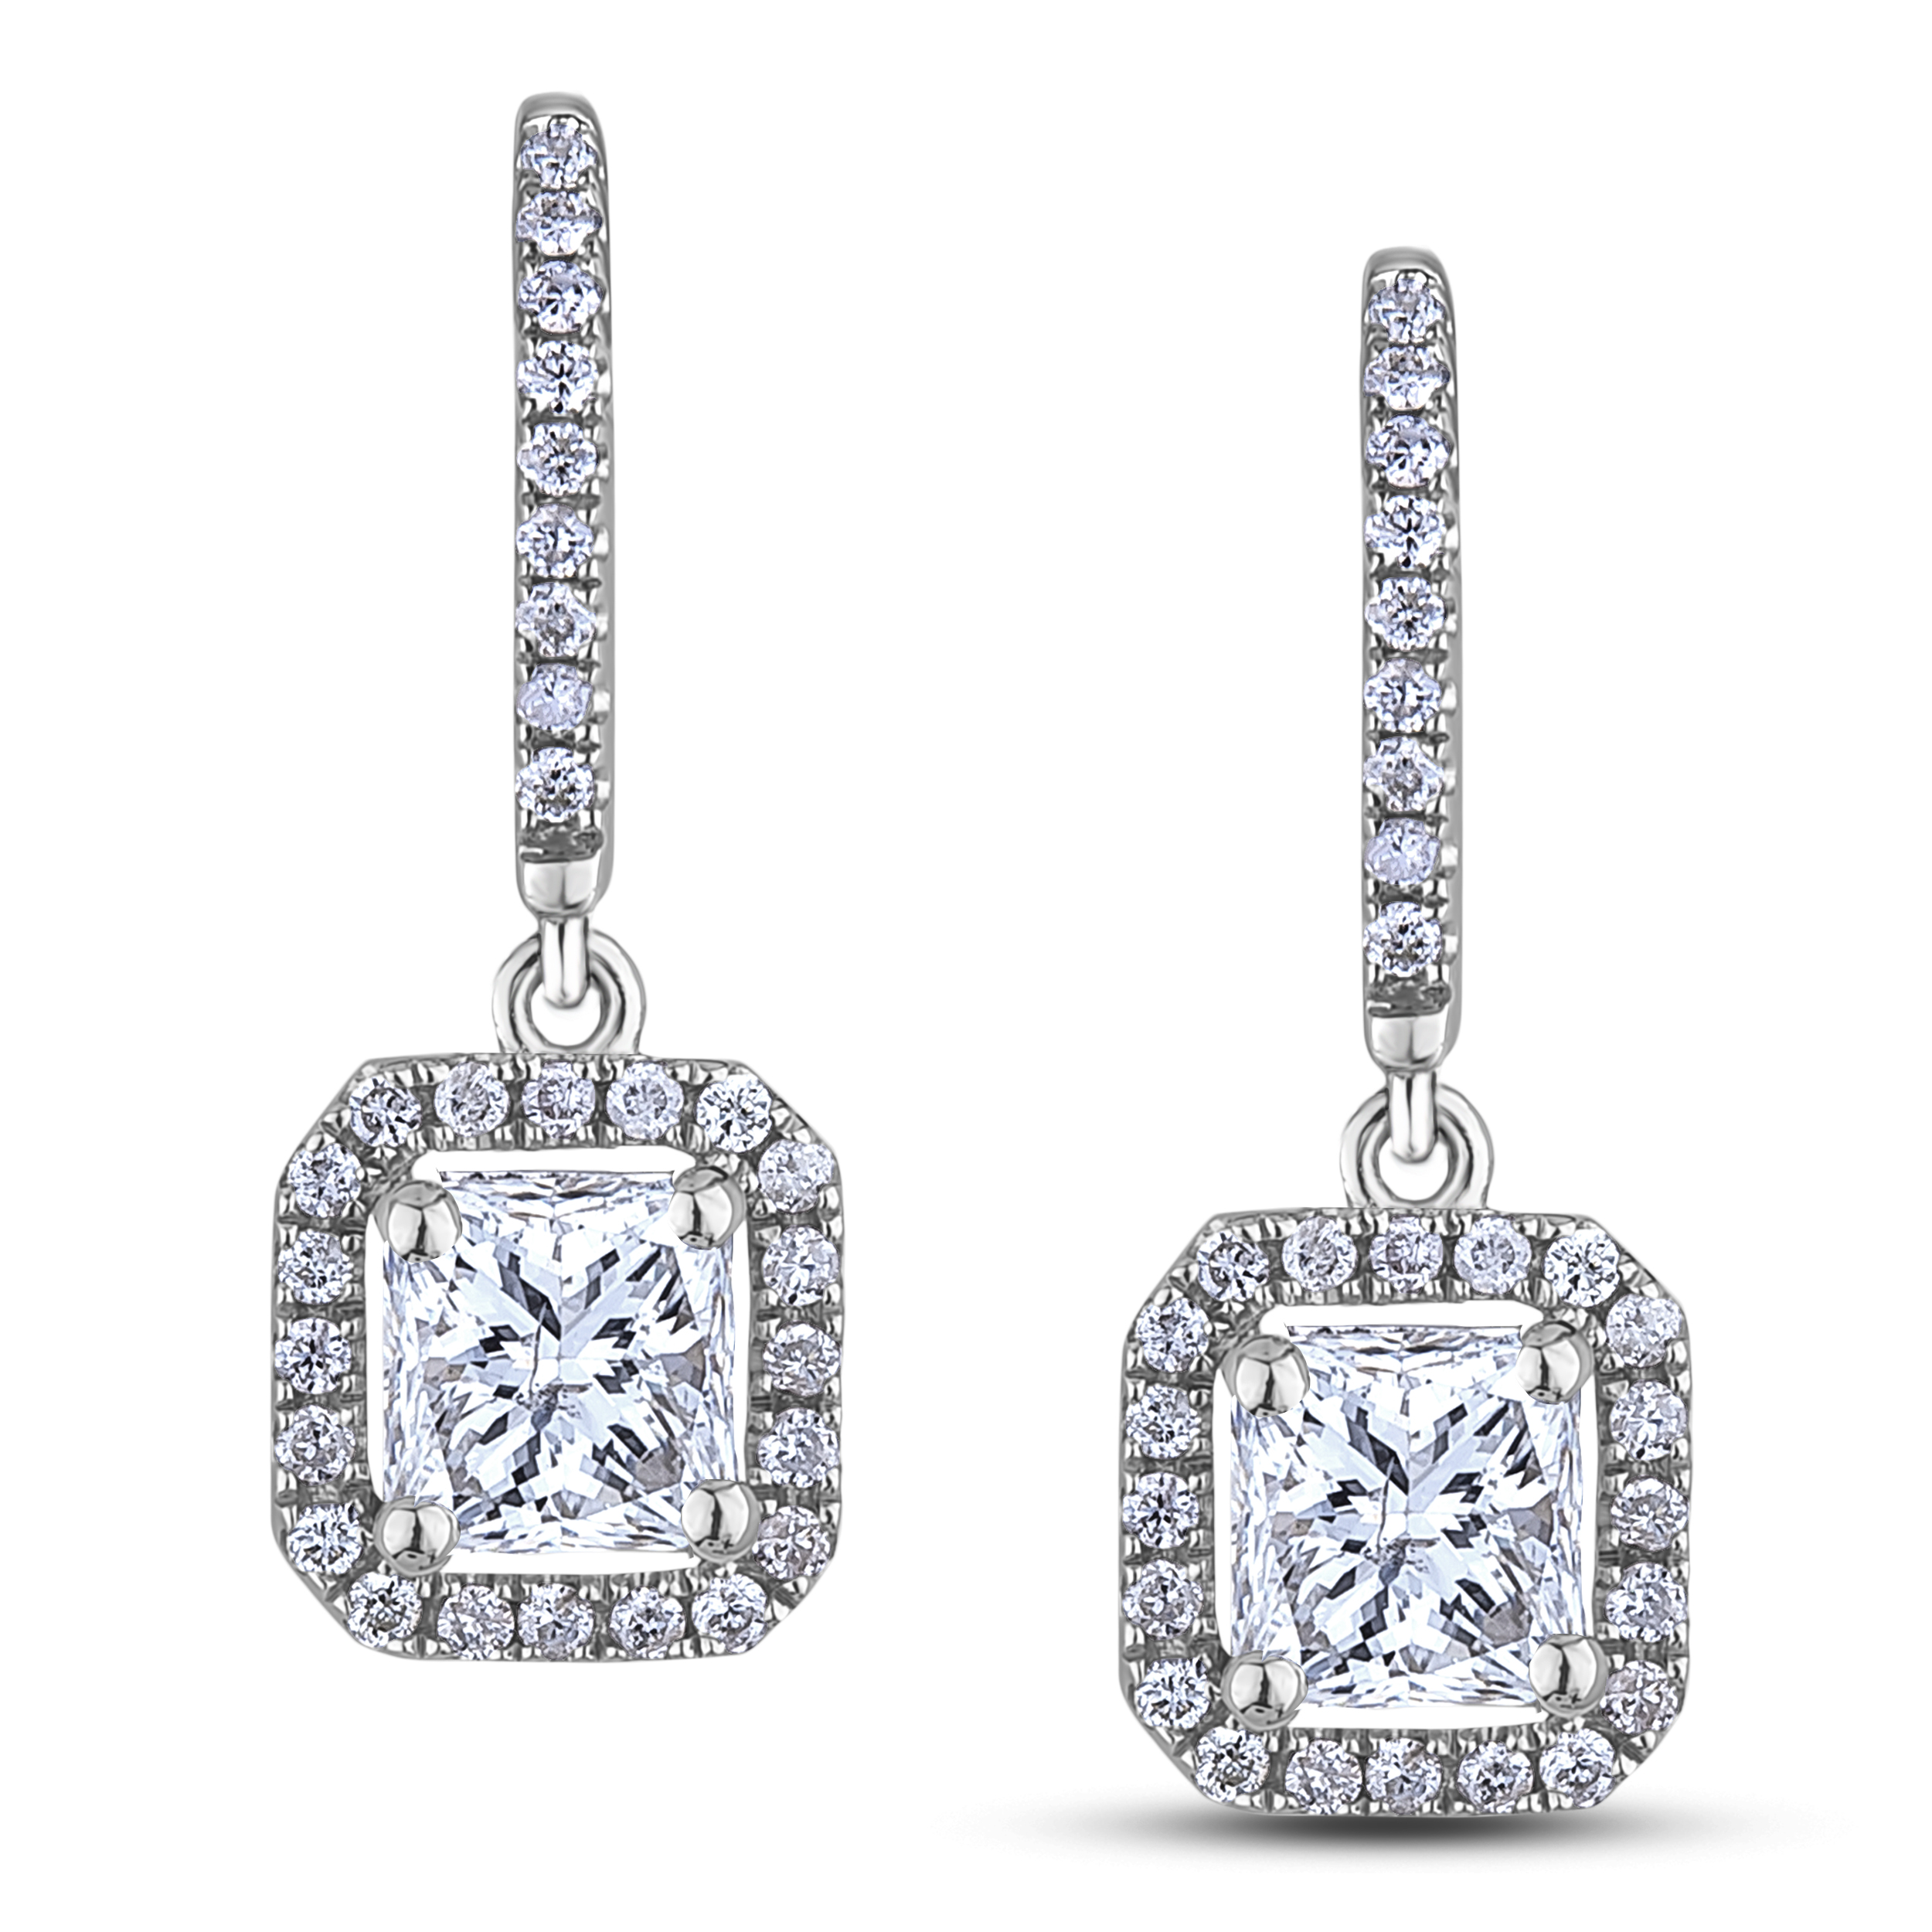 Diamond Dangle Earrings SGE272 (Earrings)